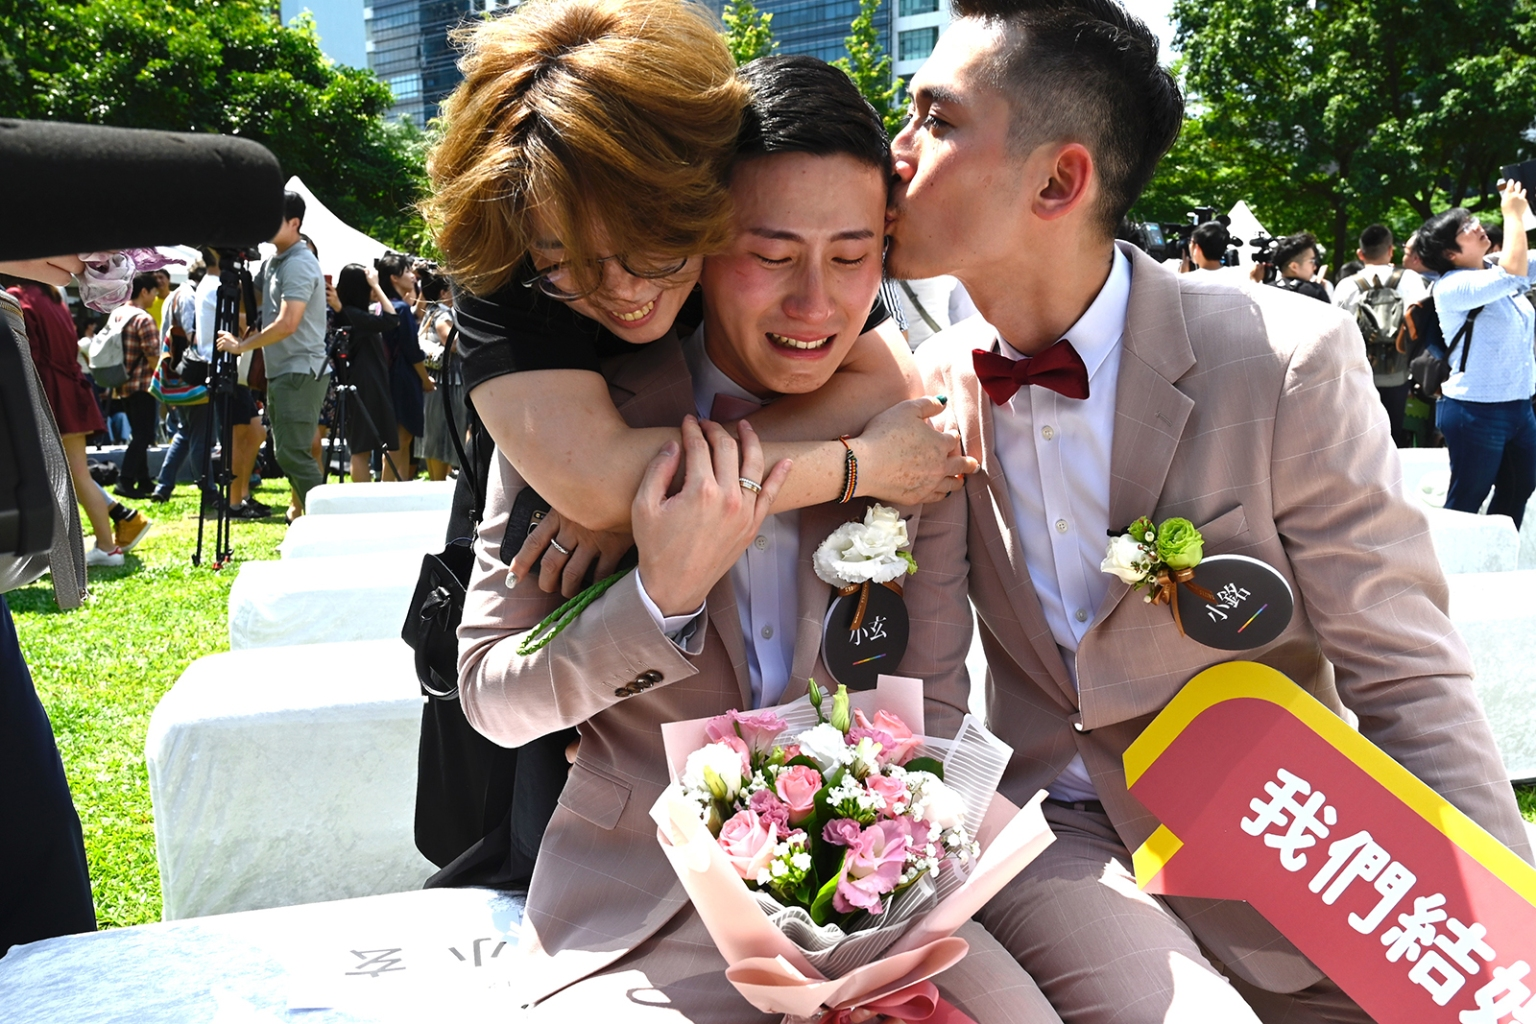 Shane Lin is comforted by his partner Marc Yuan and a friend during a wedding ceremony in Shinyi district in Taipei on May 24 after Taiwan voted to recognize same-sex marriage. SAM YEH/AFP/Getty Images